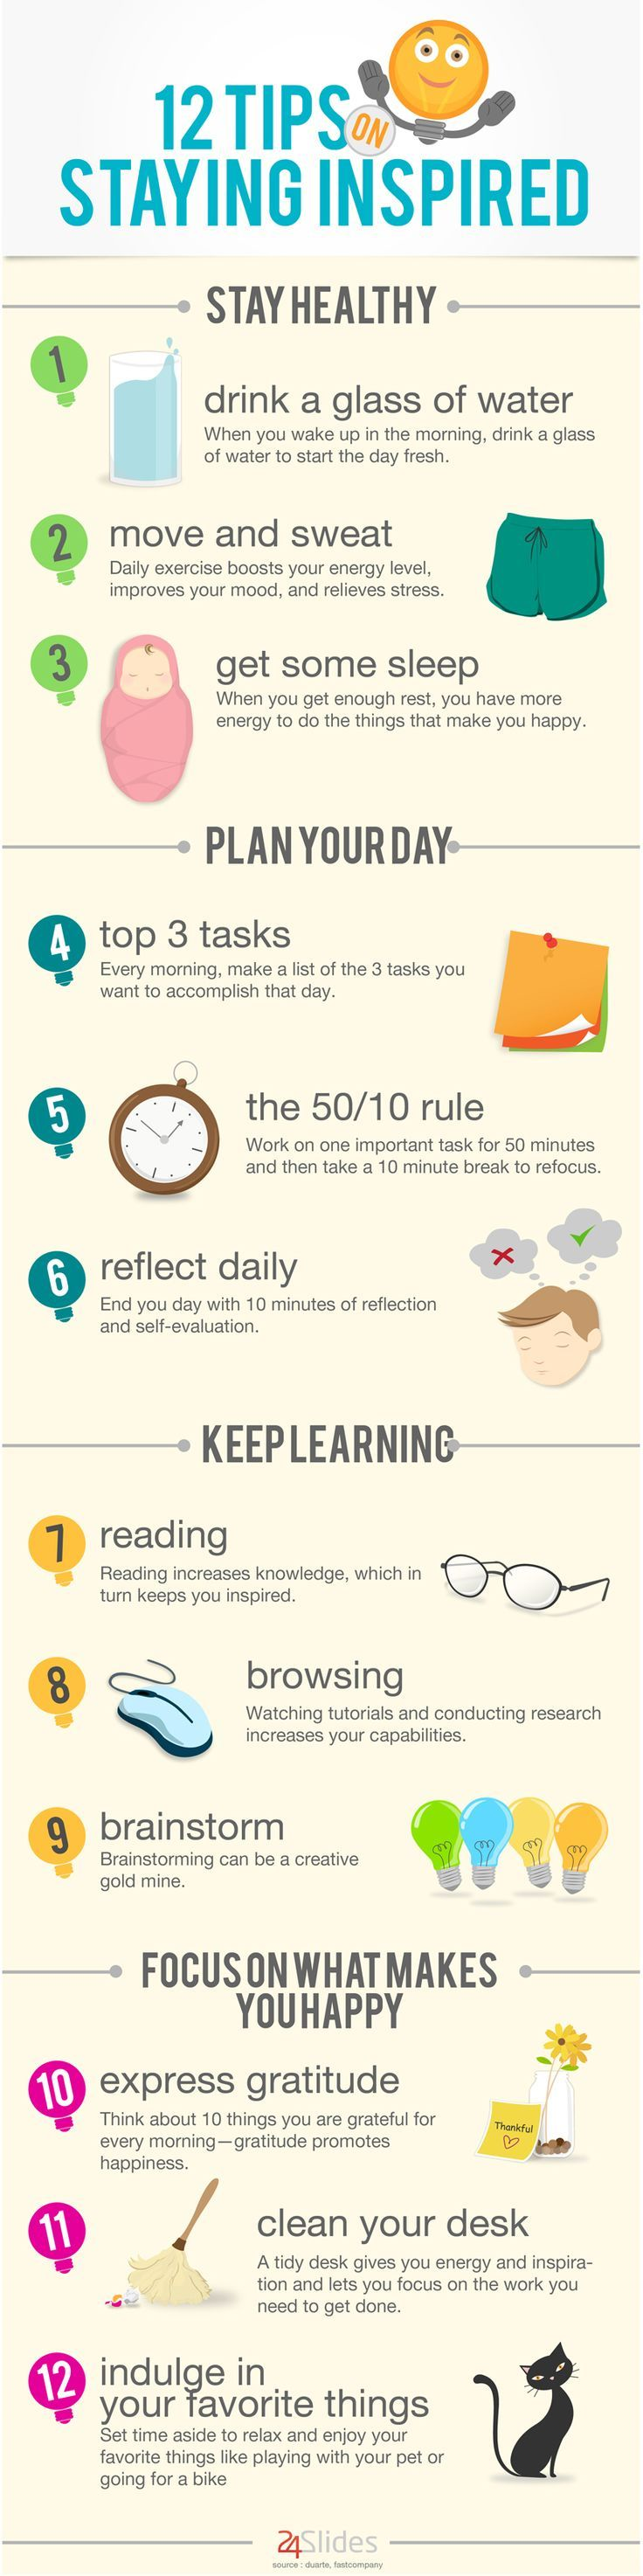 12 Tips On Staying Inspired! #healthy